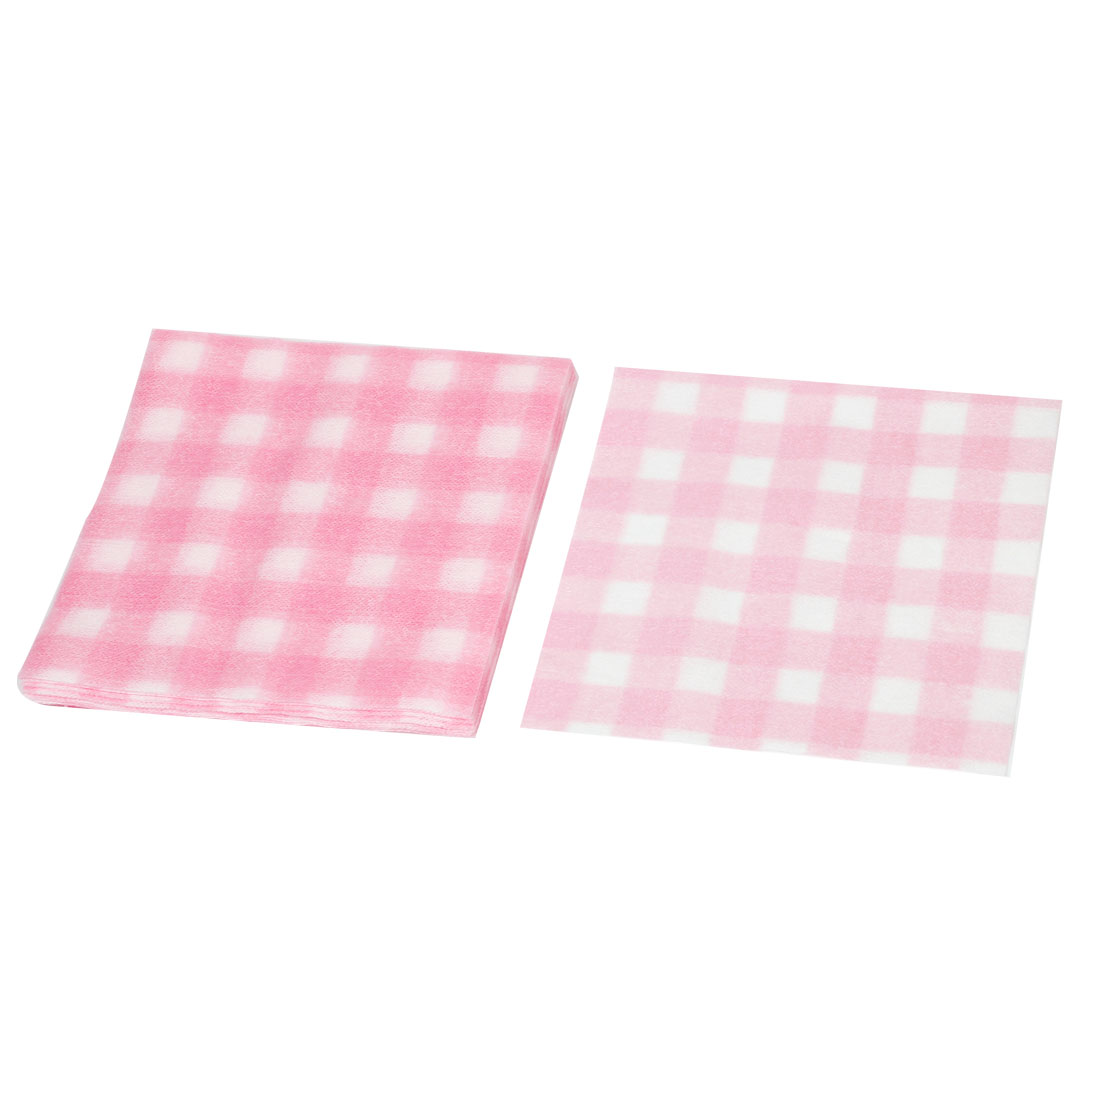 20 Pcs Pink White Check Pattern Disposable Square Shape Face Wash Clean Cloth